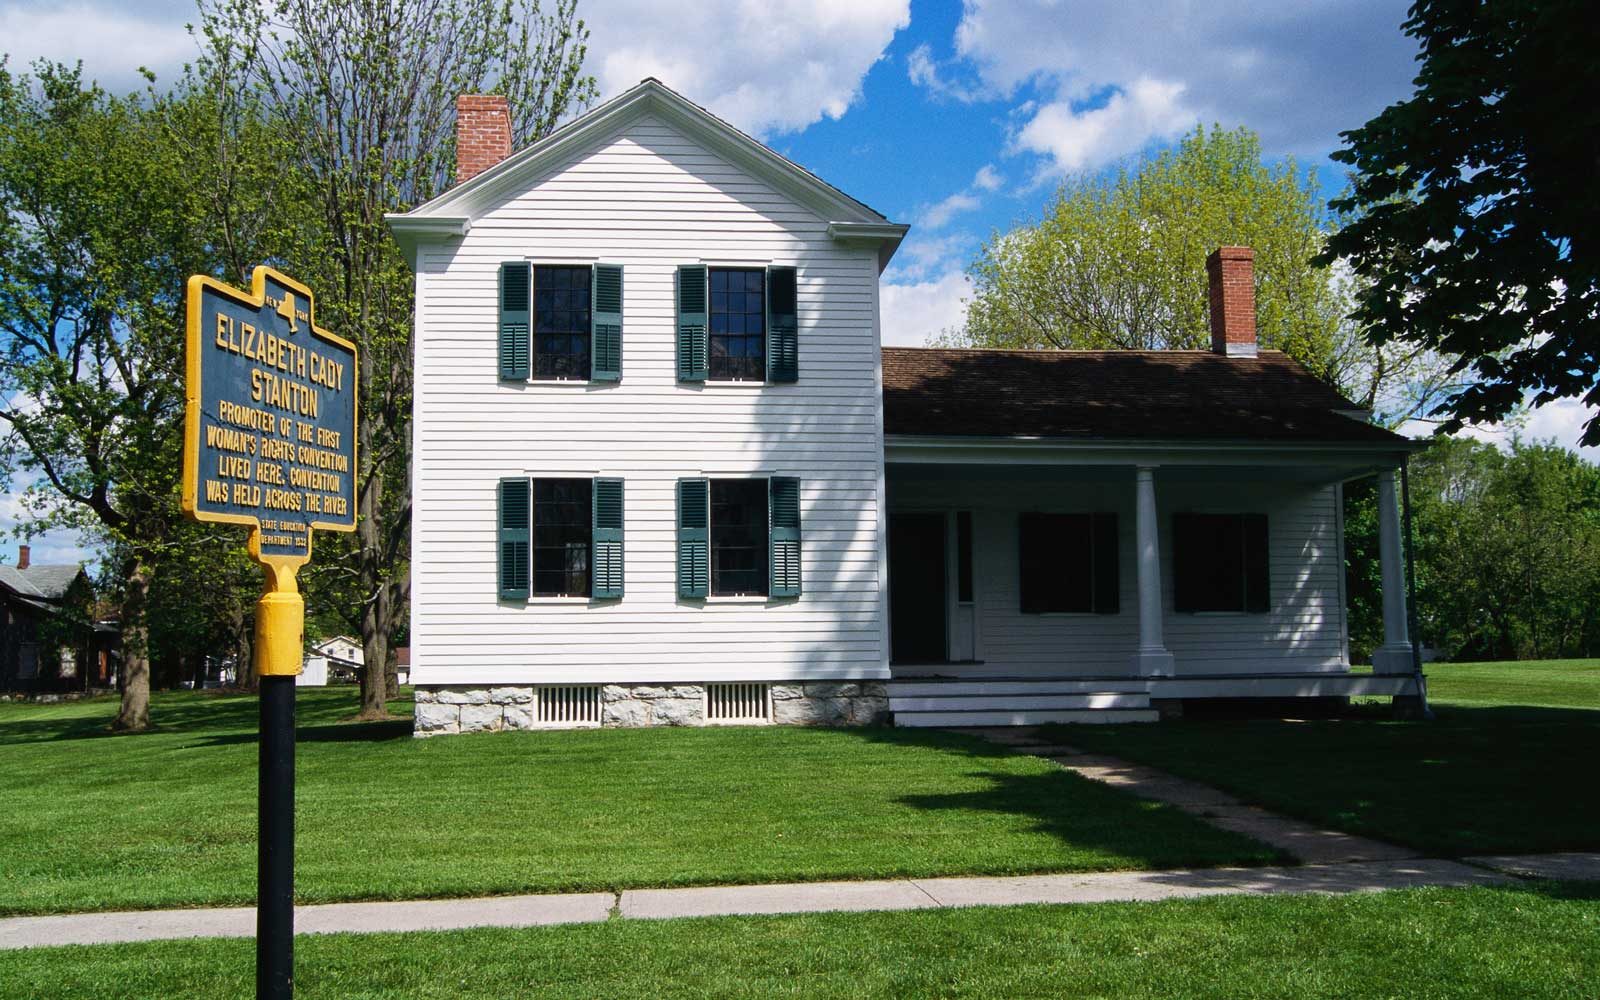 Home of Elizabeth Cady Stanton, on Washington Avenue, at Women's Rights National Historic Park in Seneca Falls, New York.